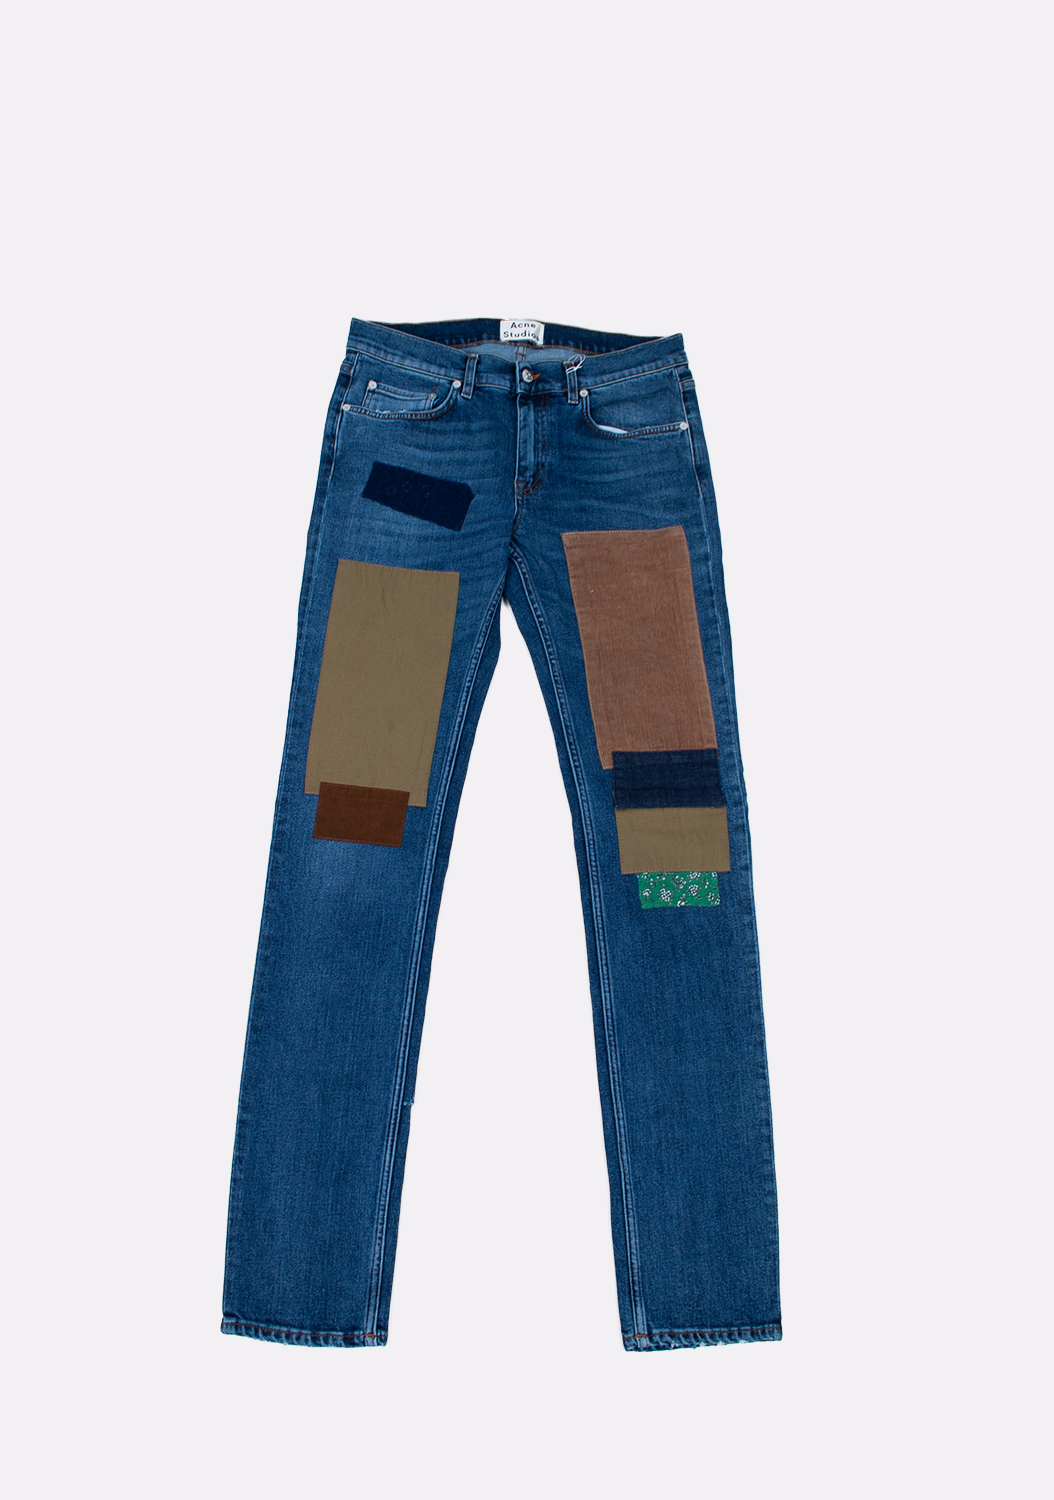 acne-studios-patch-dzinsai-1